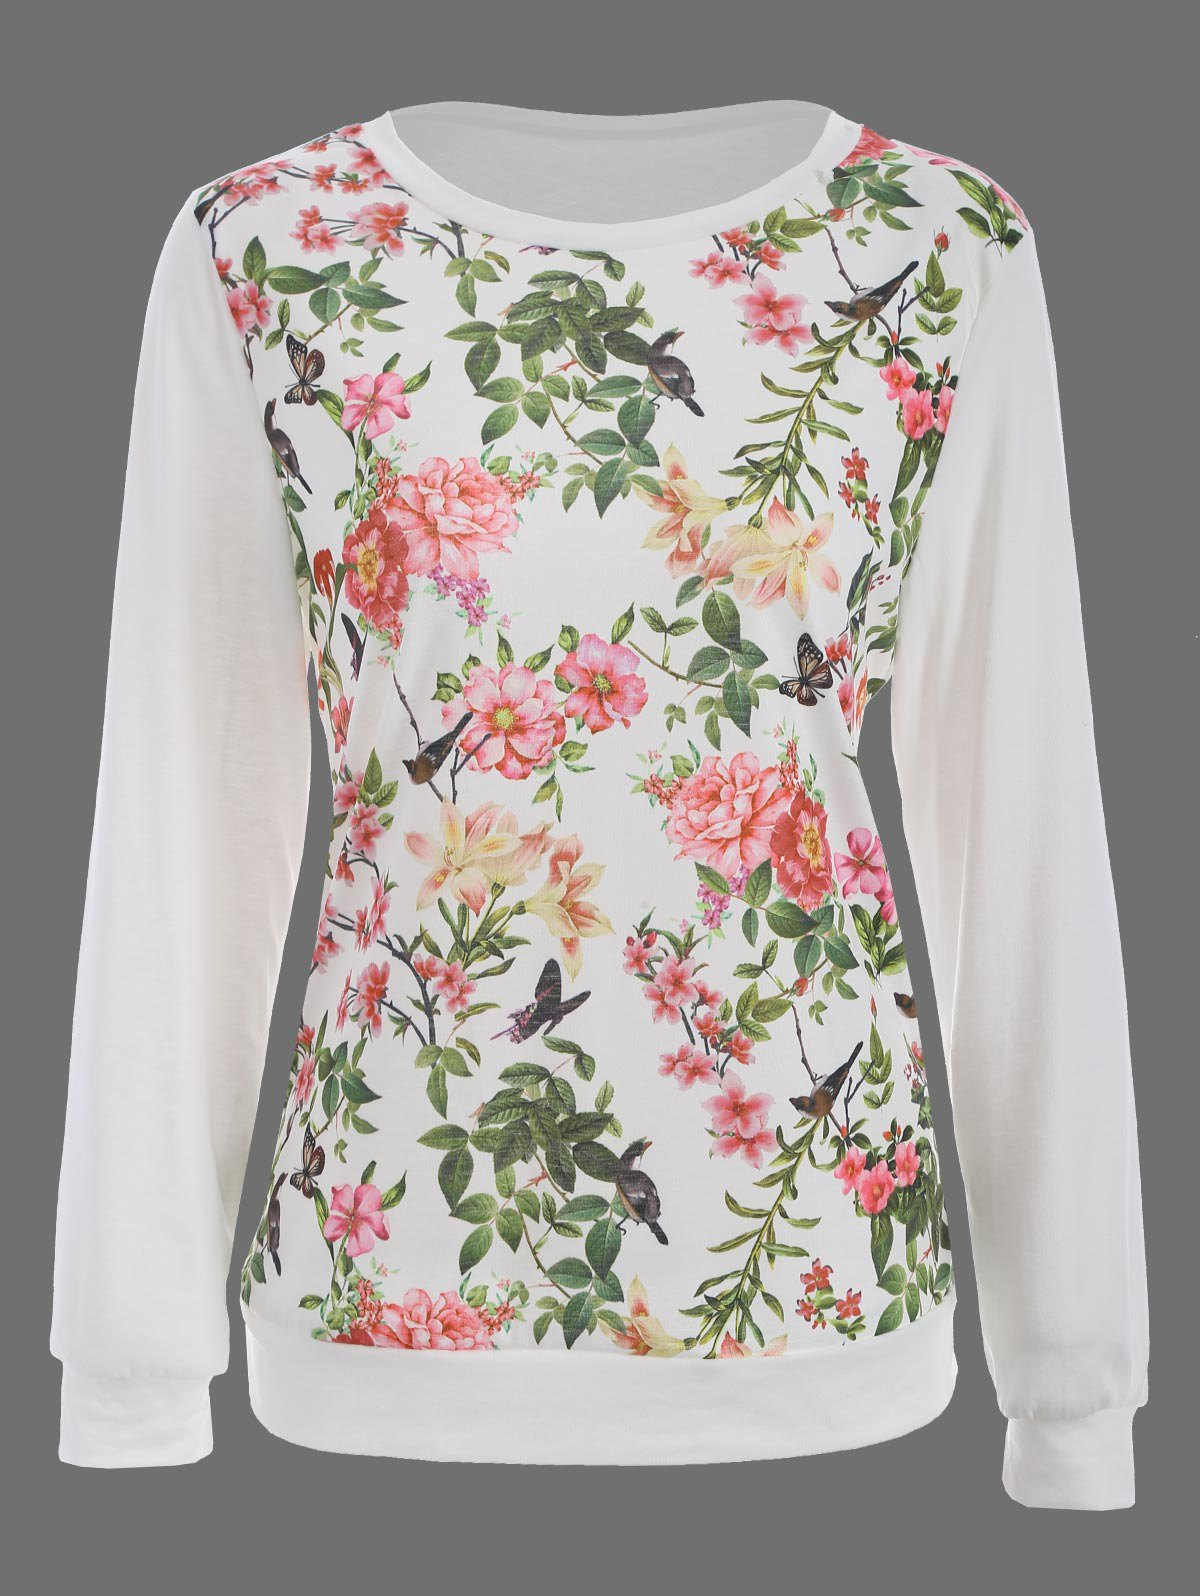 Floral Bird Print Long SLeeve T-Shirt plus size bird and floral print v neck long sleeve t shirt